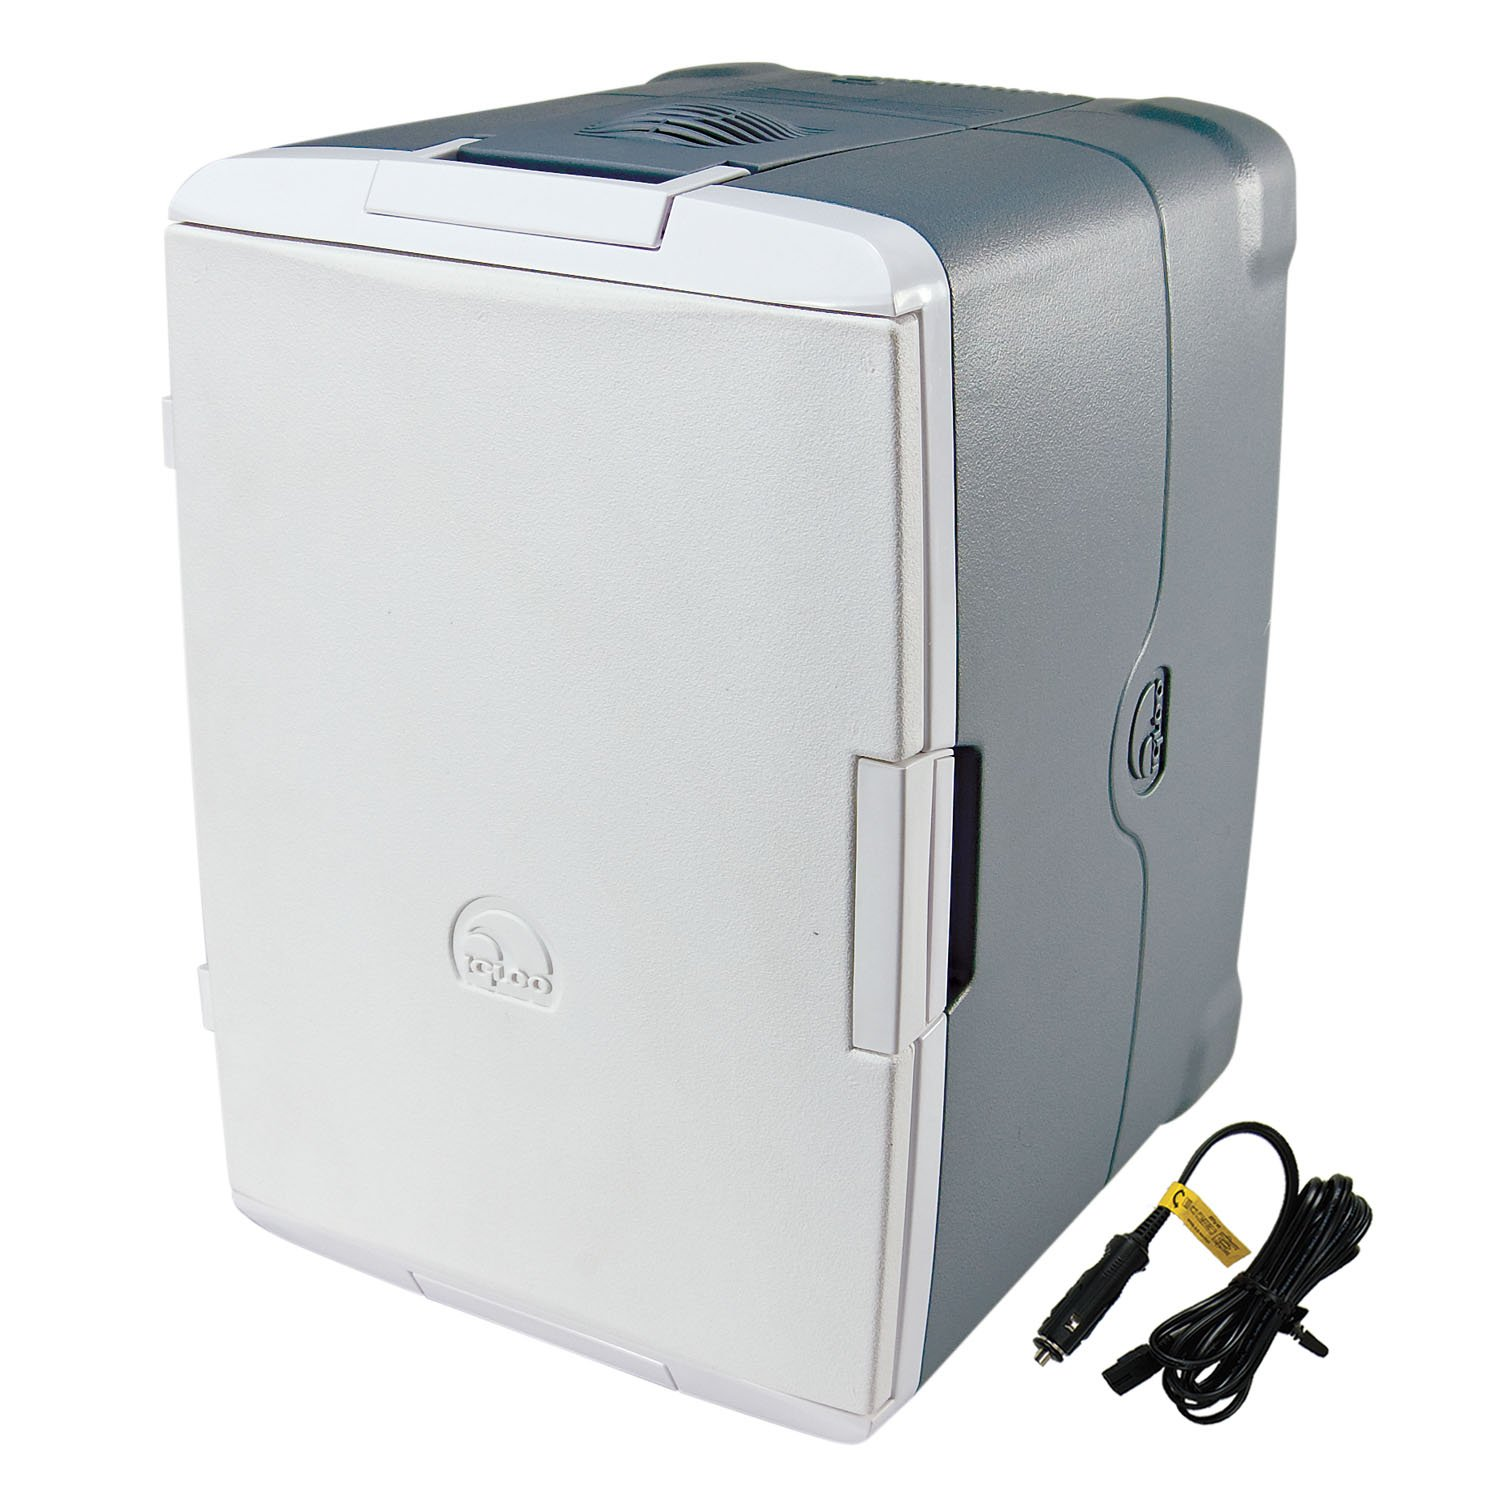 Igloo Iceless 40-Quart with 110-volt Converter Coolers, Silver by Igloo